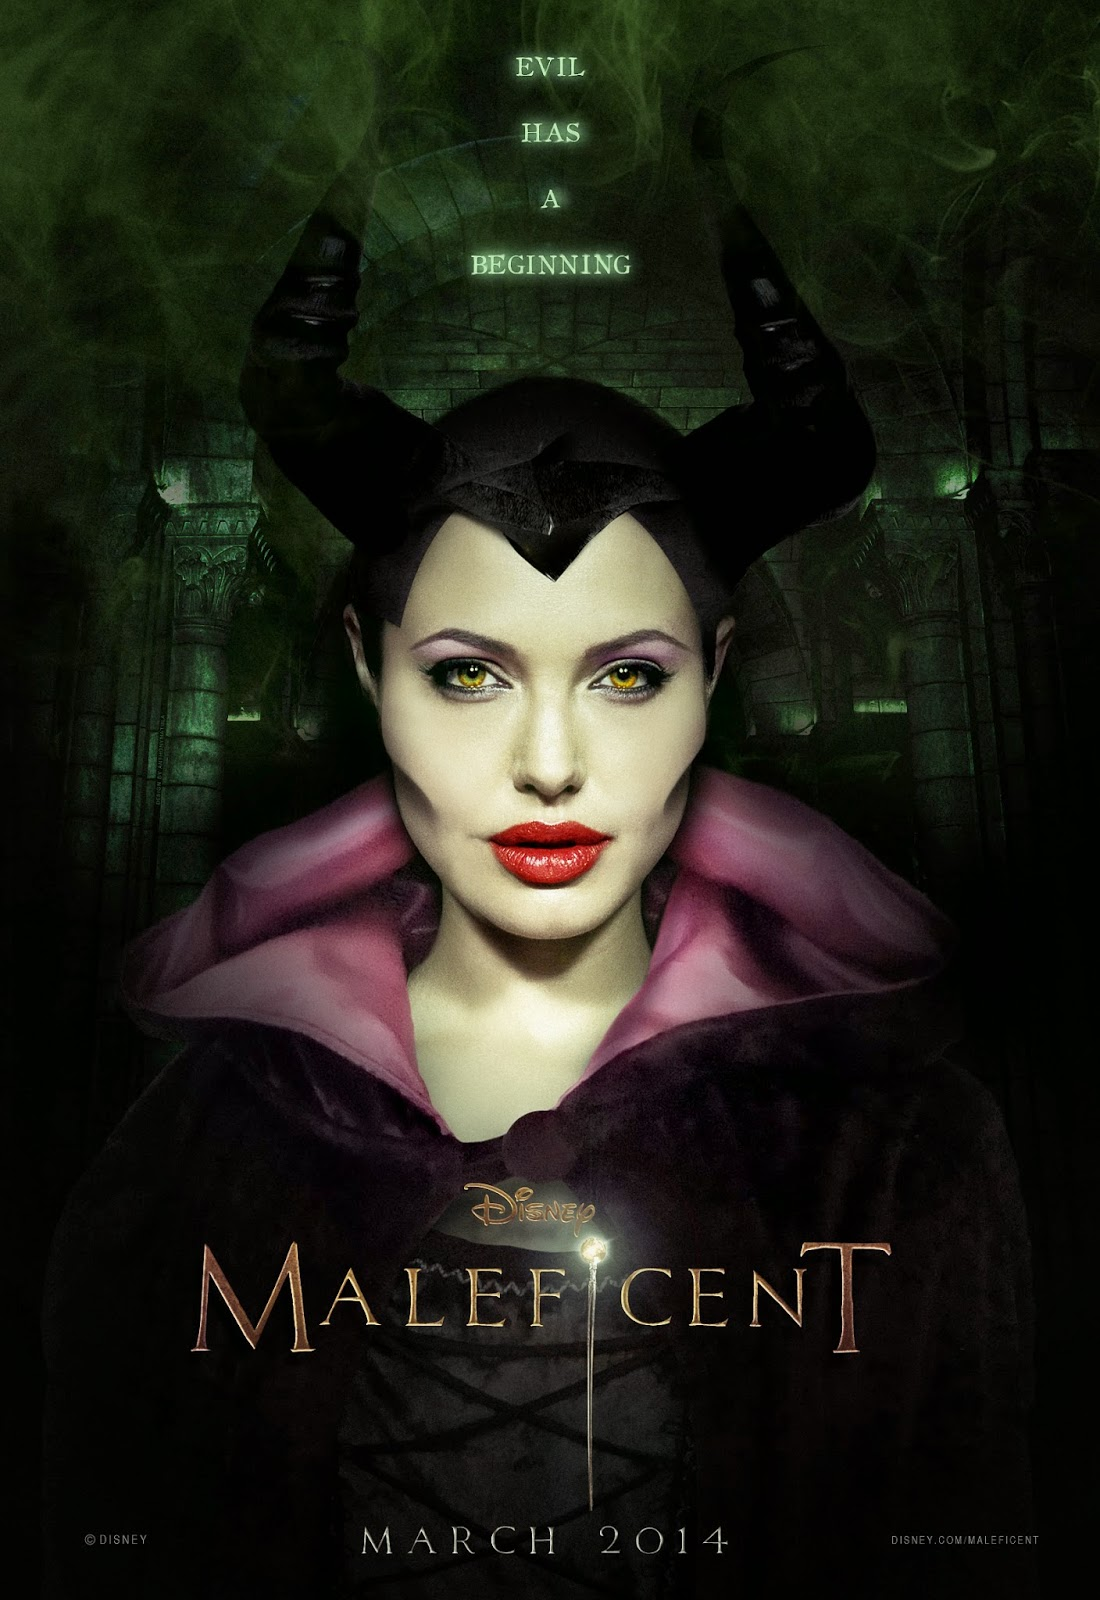 Maleficent movieloversreviews.filminspector.com